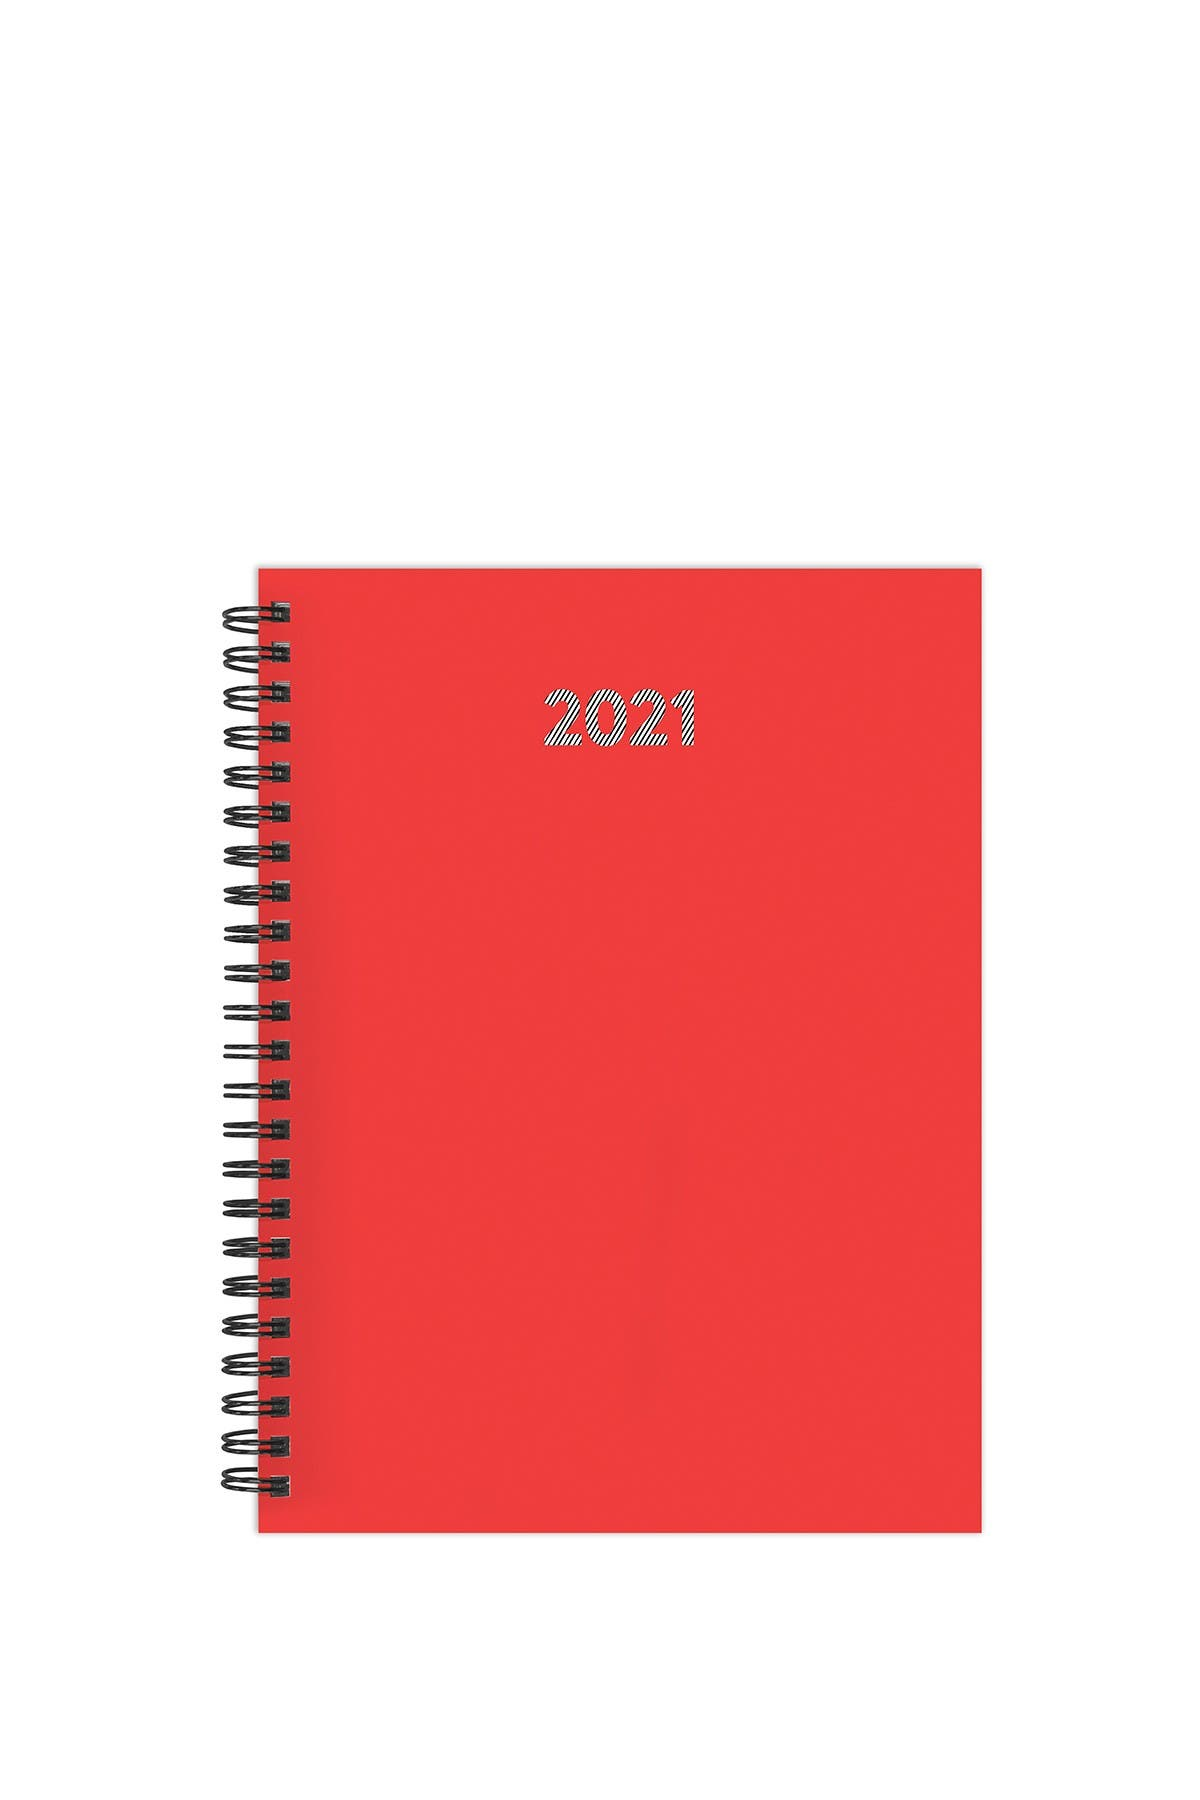 Image of TF Publishing 2021 Red It Right Medium Weekly Monthly Planner